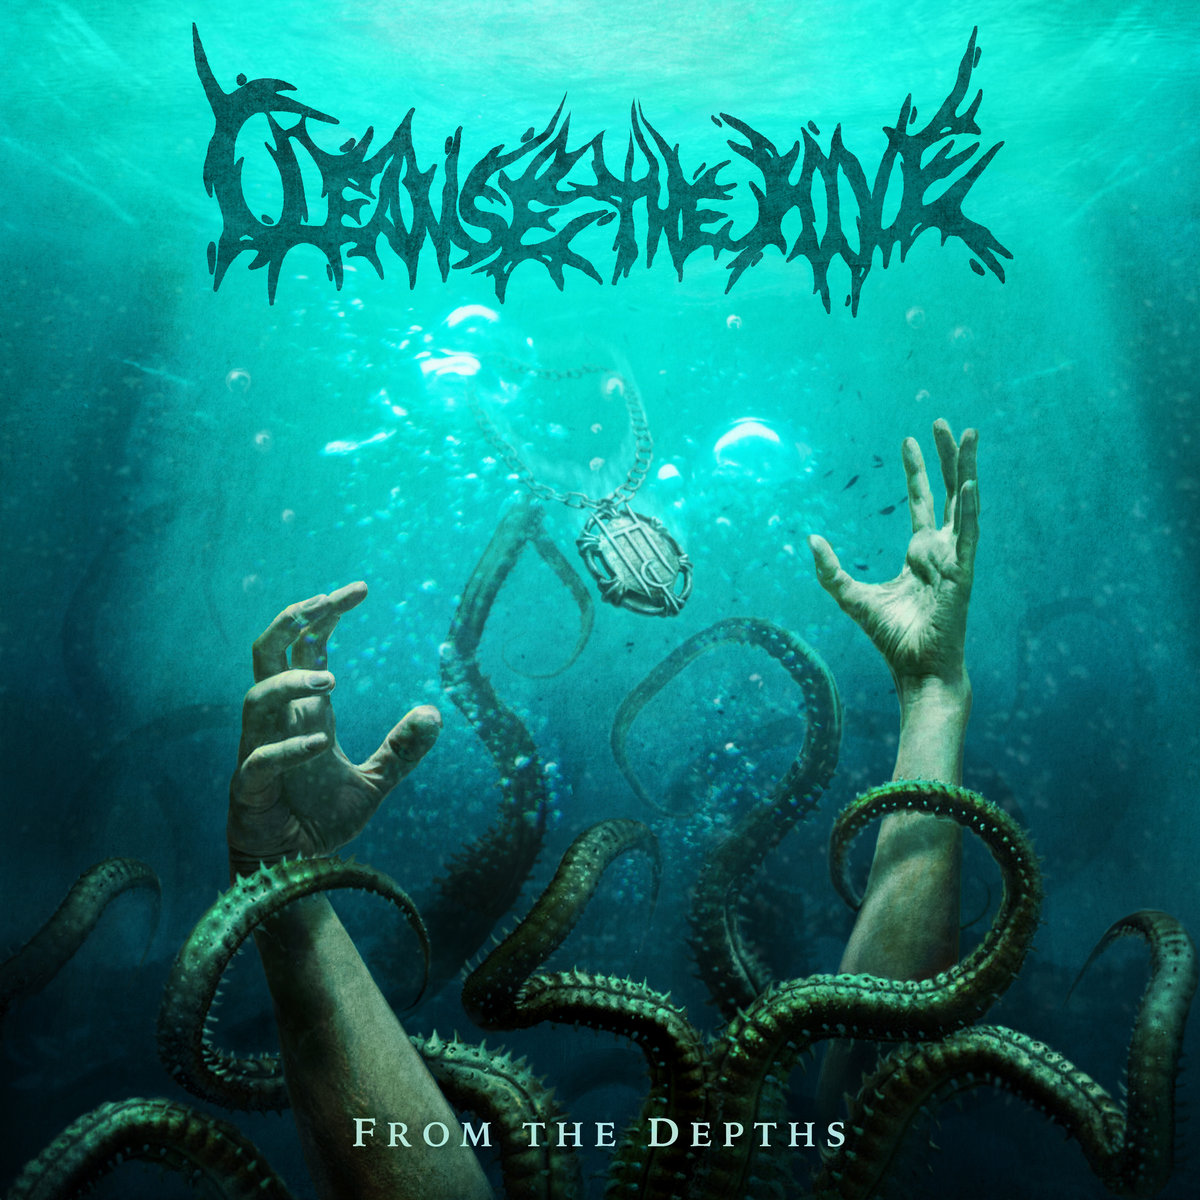 Cleanse The Hive – From the Depths EP Review